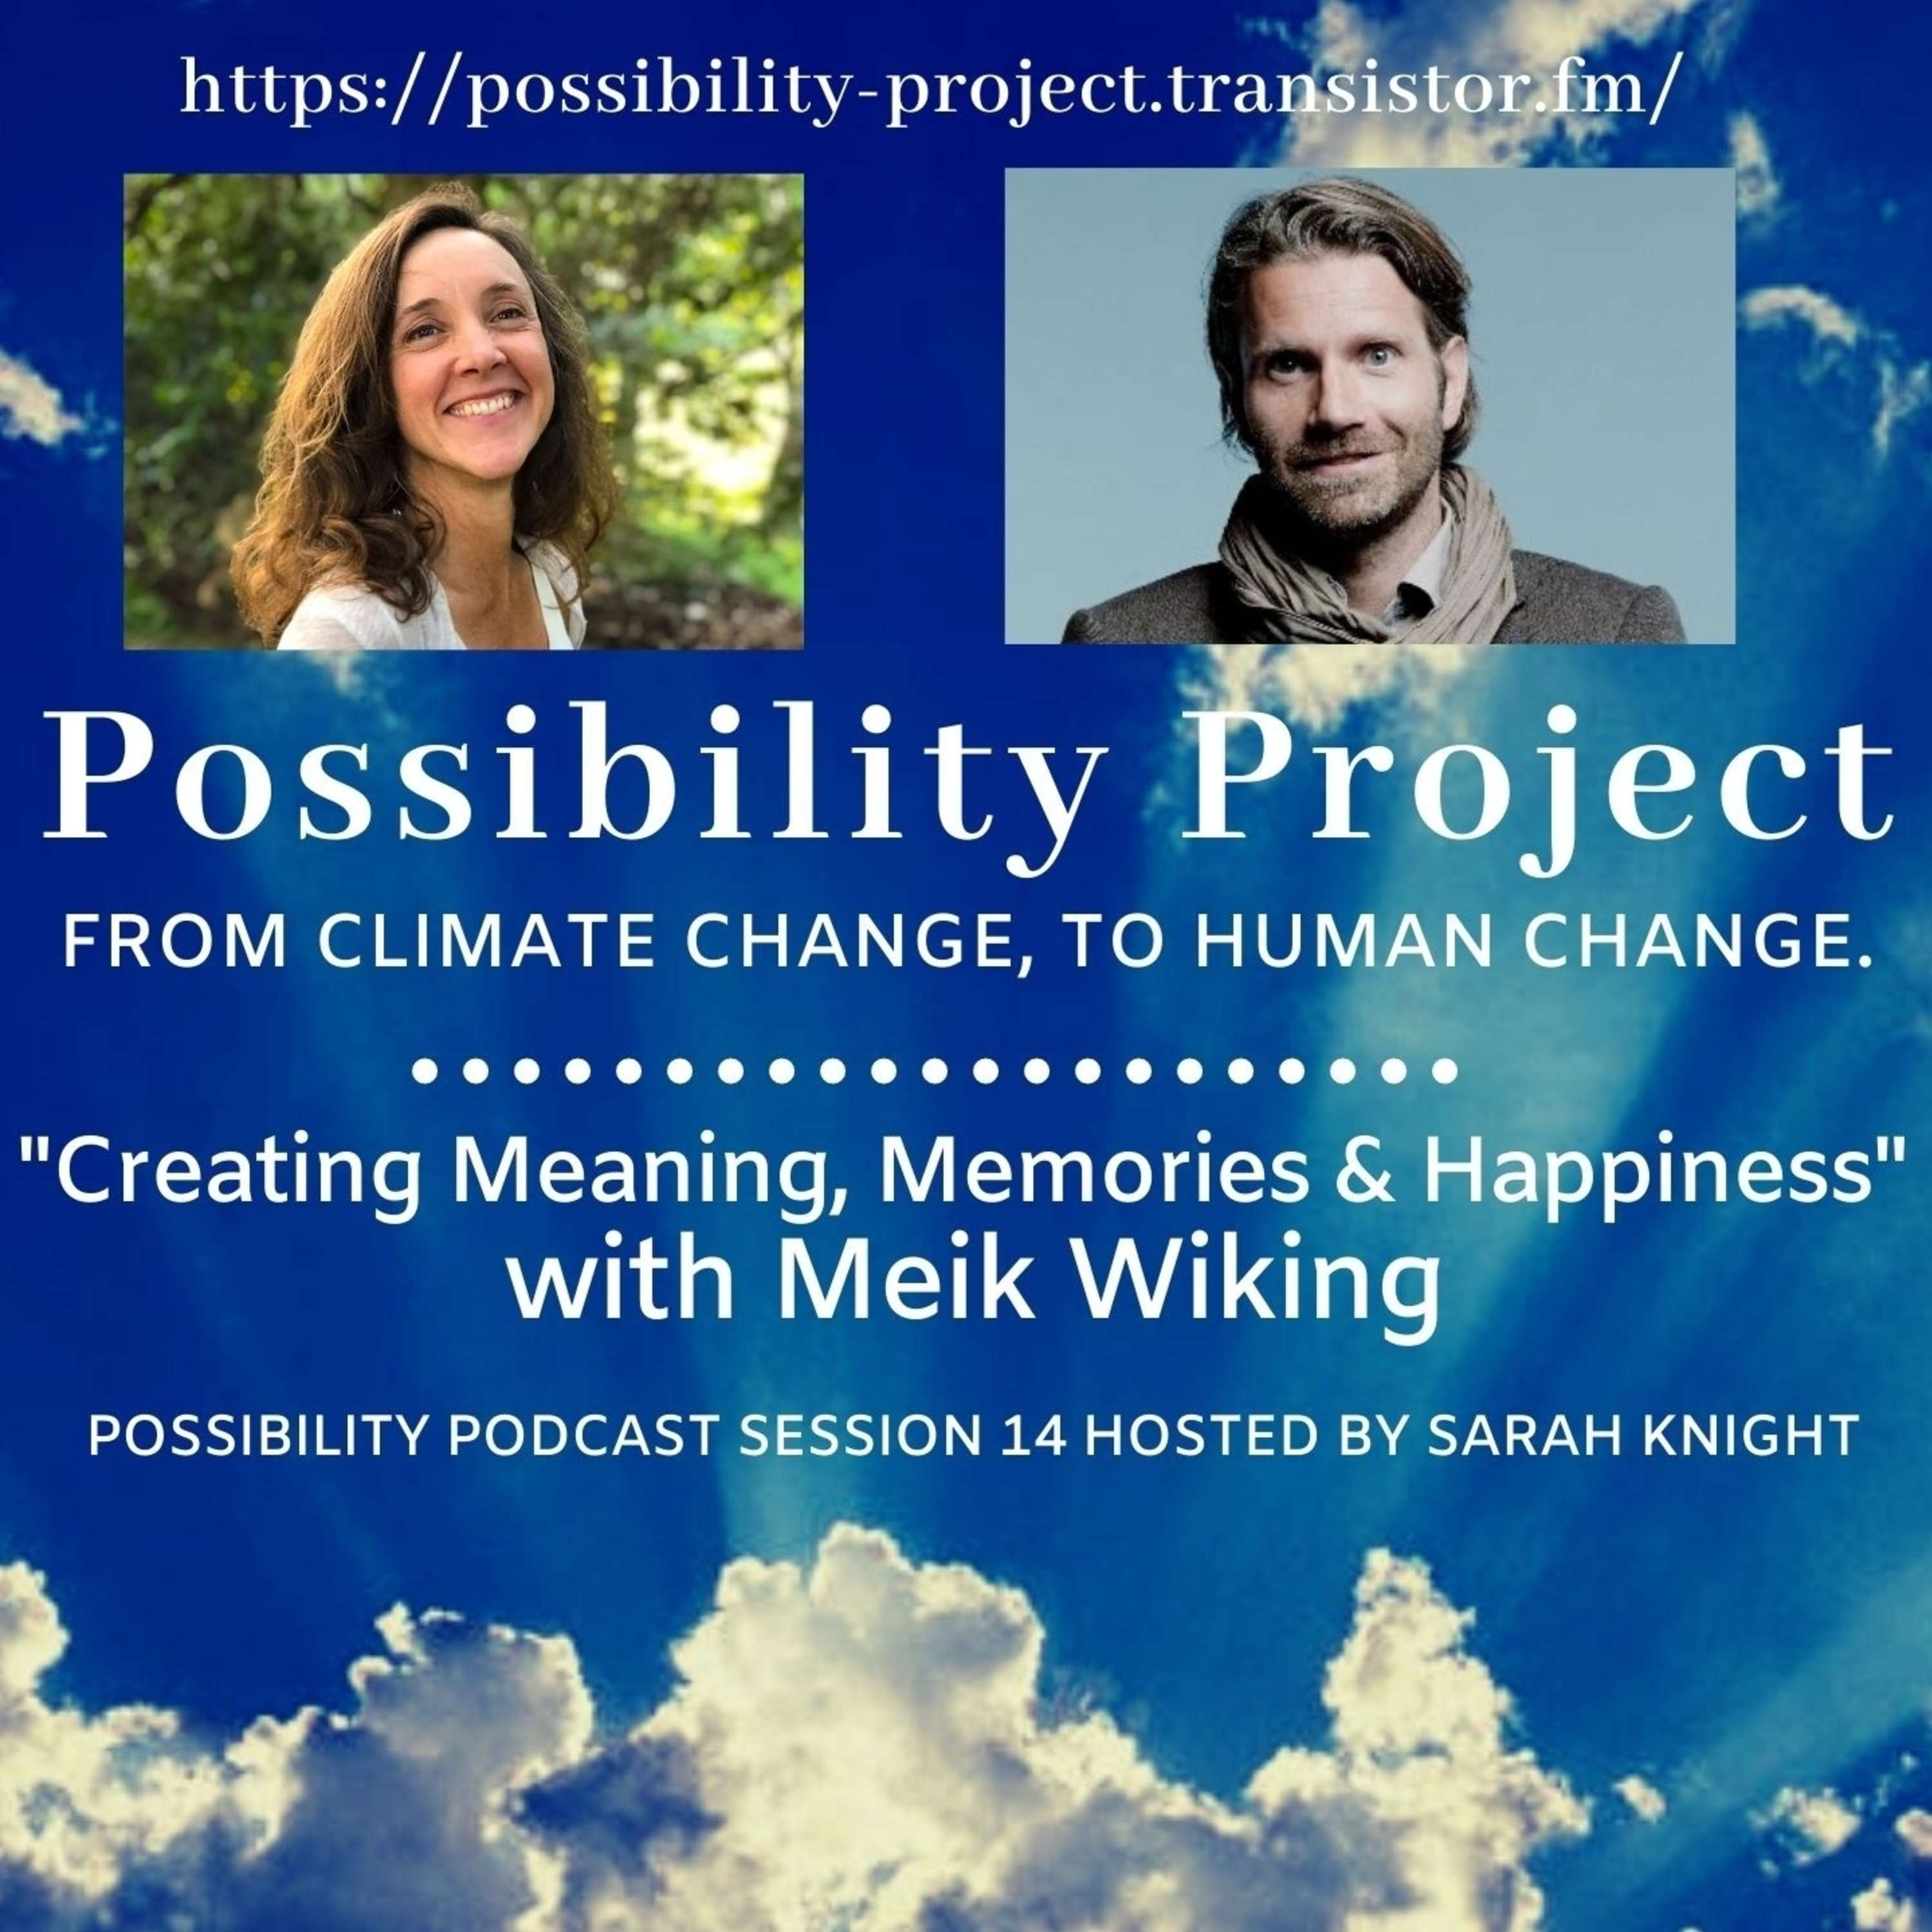 Creating Meaning, Memories and Happiness with Meik Wiking. Possibility Podcast Session 14.